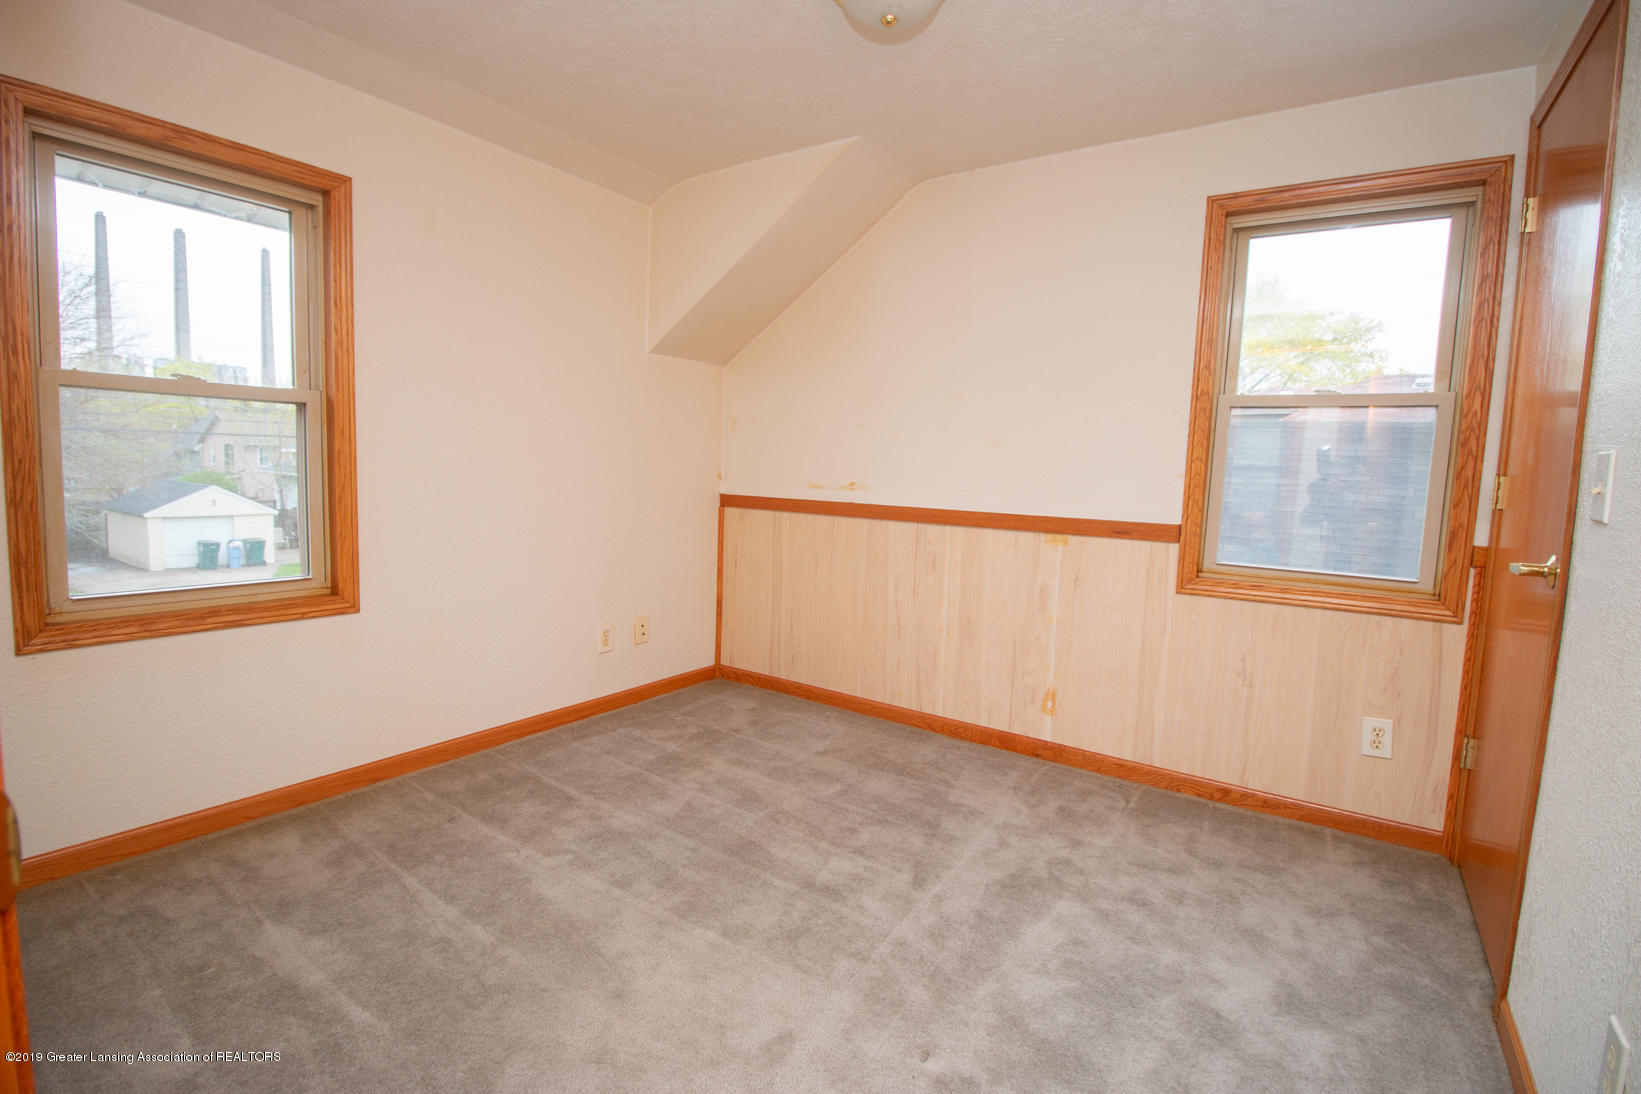 613 W Mt Hope Ave - Bedroom - 13